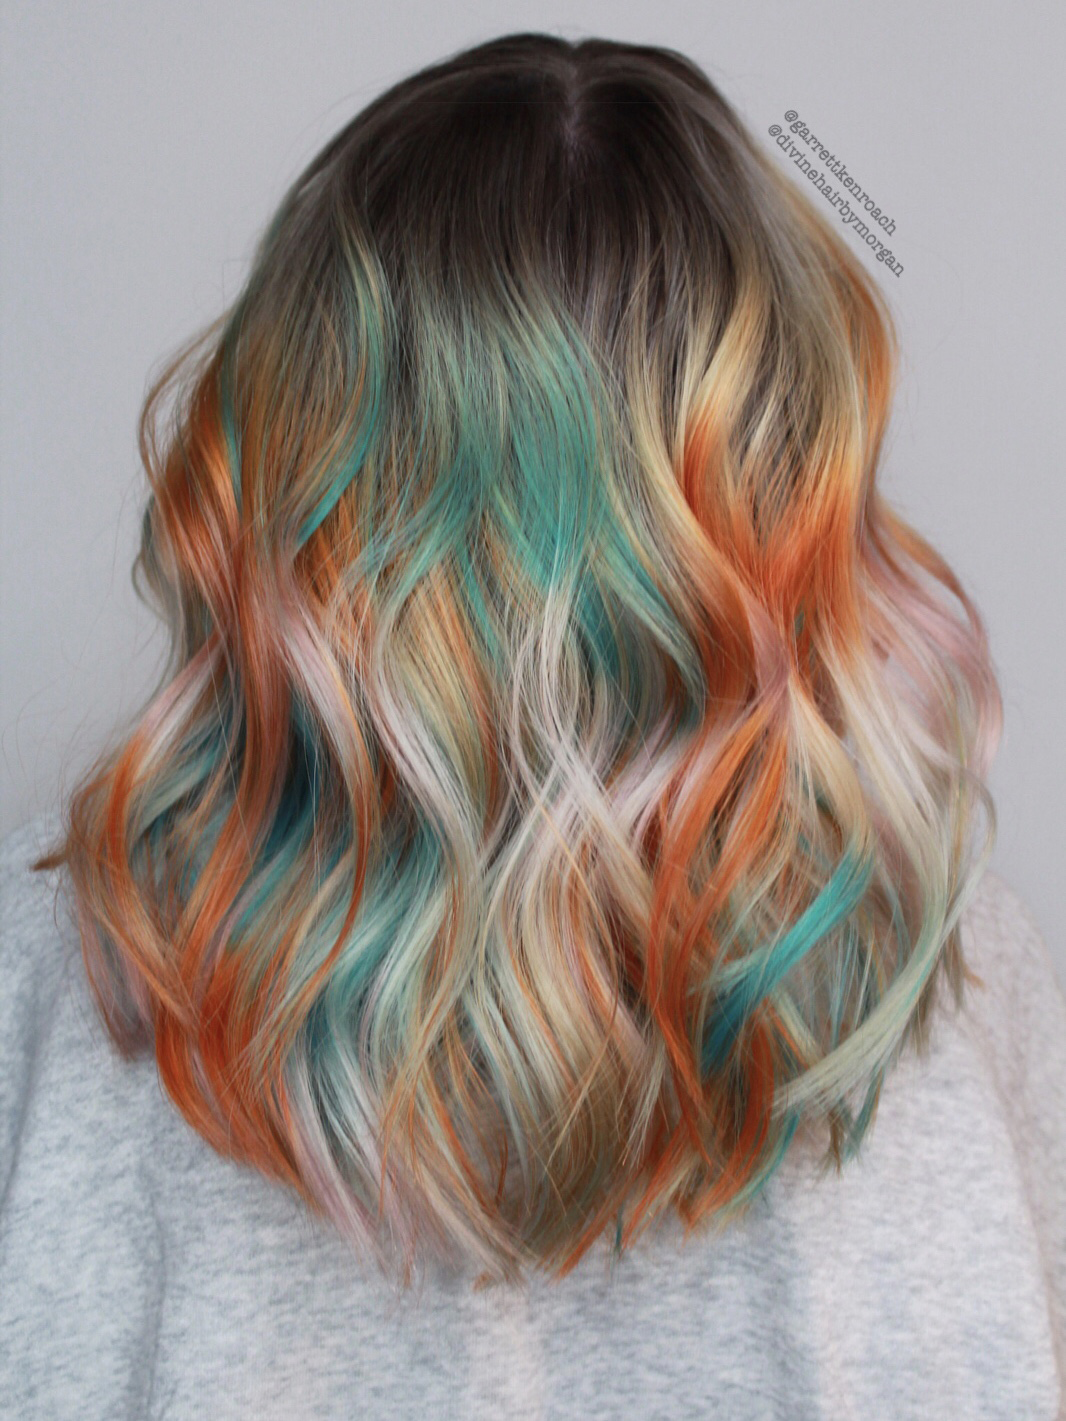 CLENDITIONER-COPPER-ROSEGOLD-EMERALD+TEAL-GARRETTKENROACH-DIVINEHAIRBYMORGAN-4